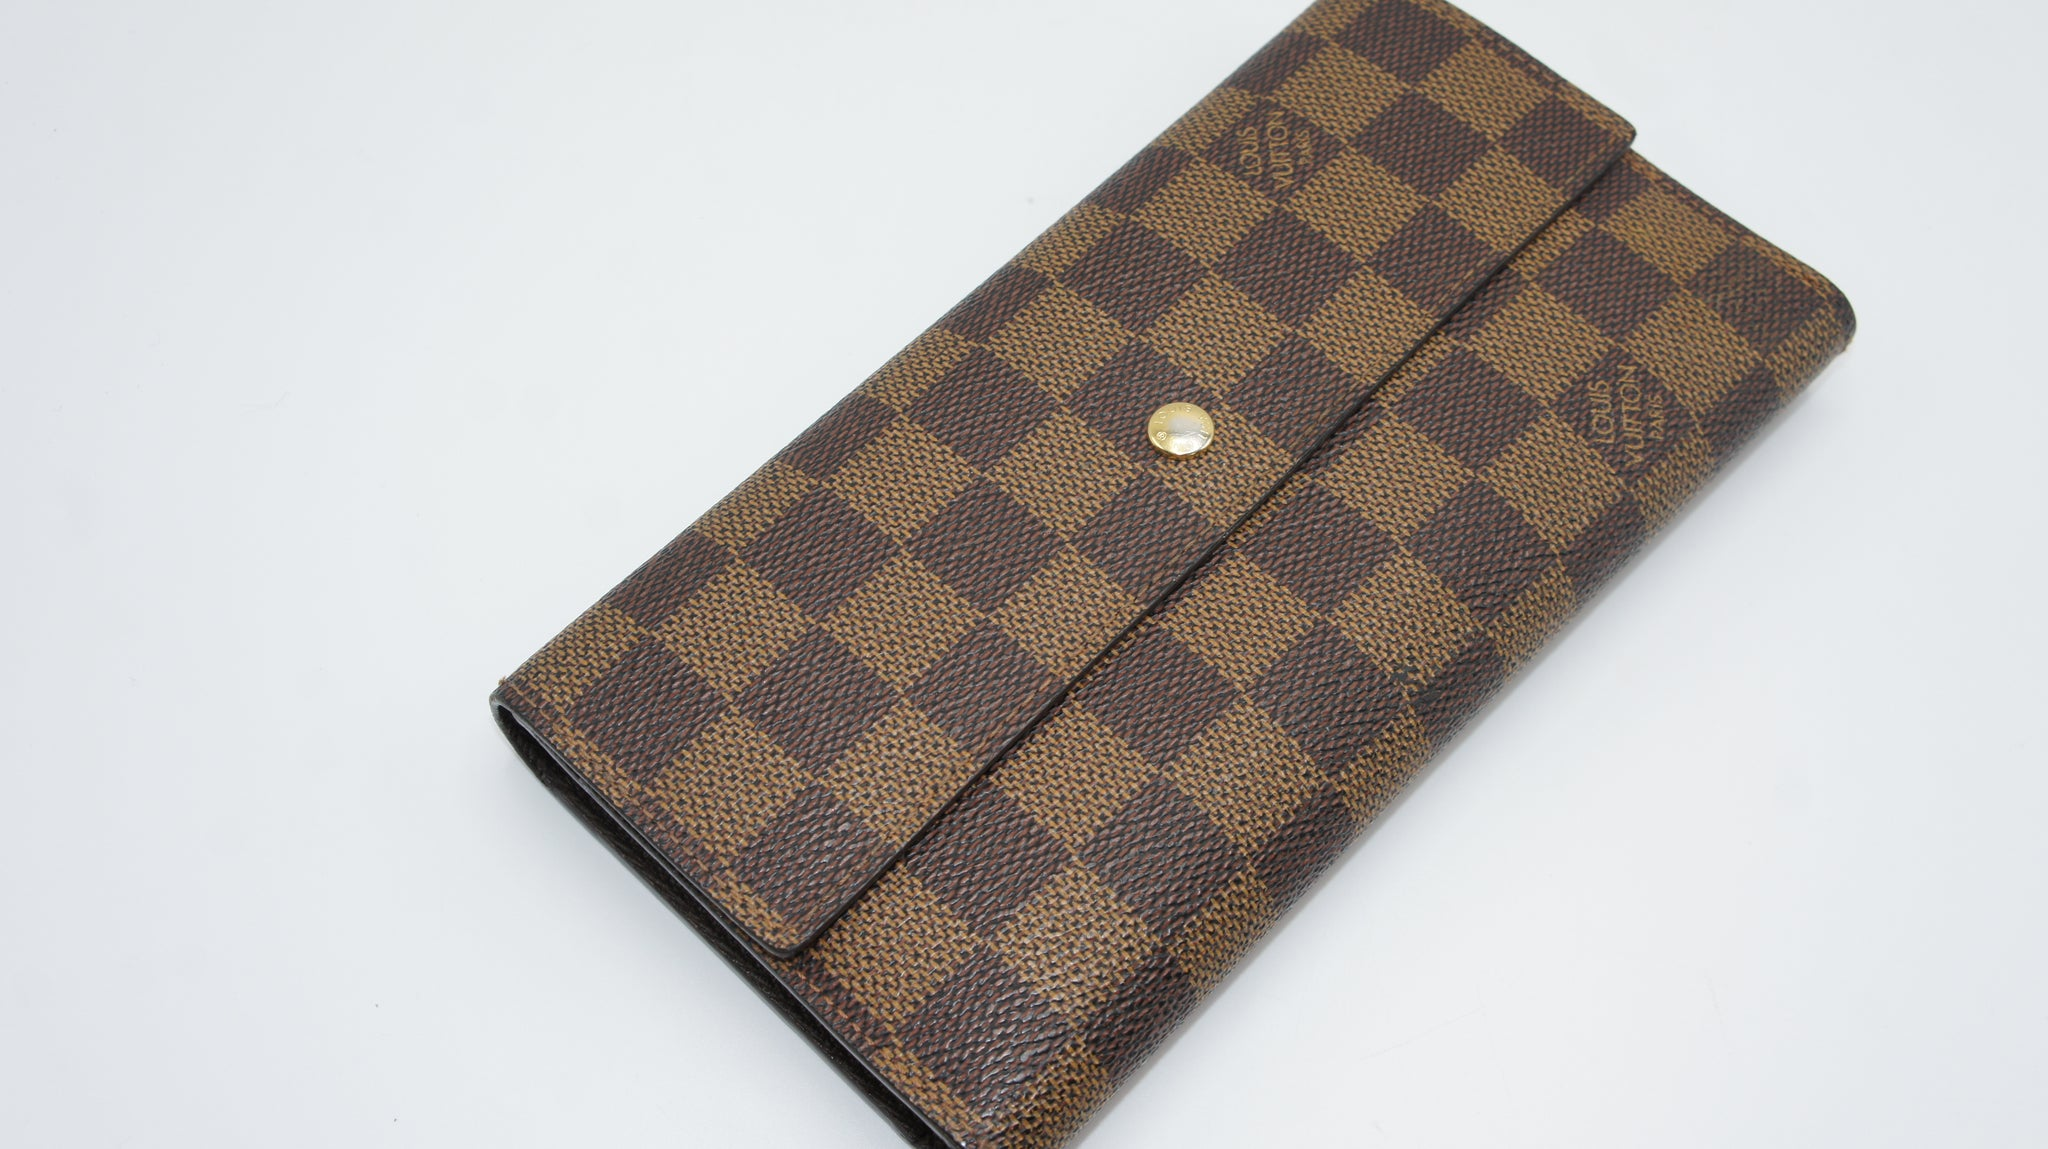 Louis Vuitton Damier Ebene Wallet - Iconics Preloved Luxury